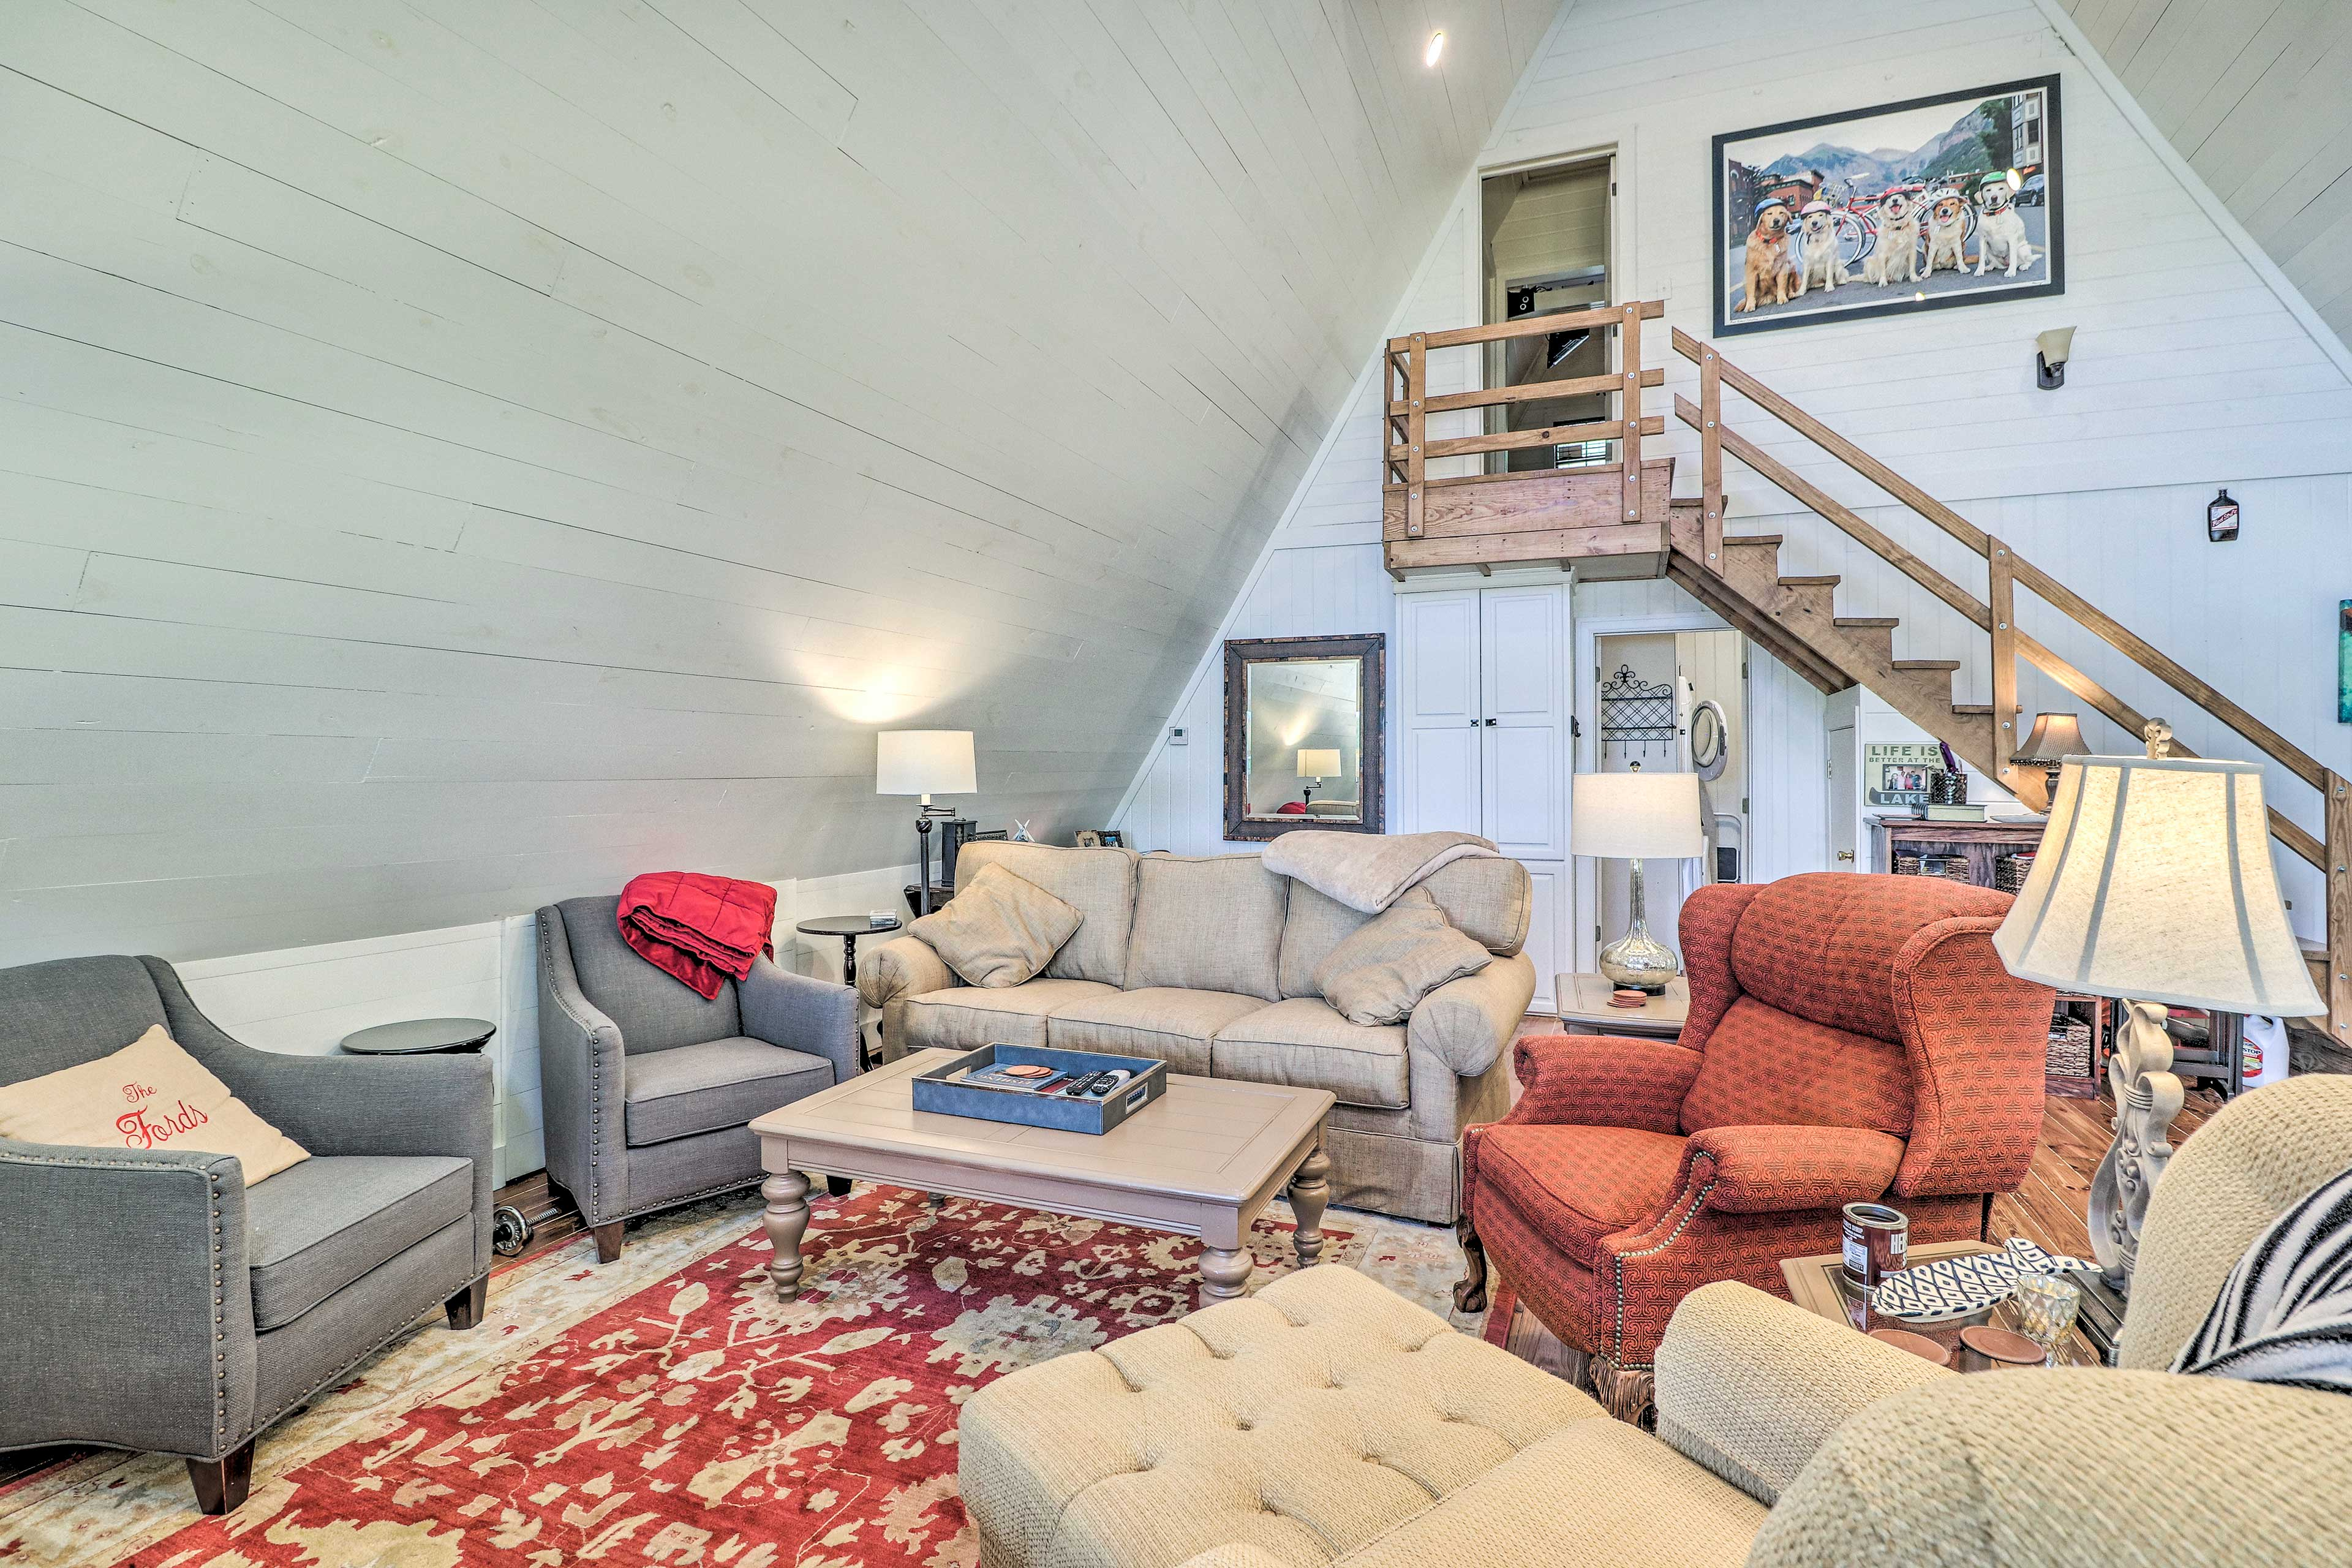 The living space has plenty of room to cozy up with loved ones.